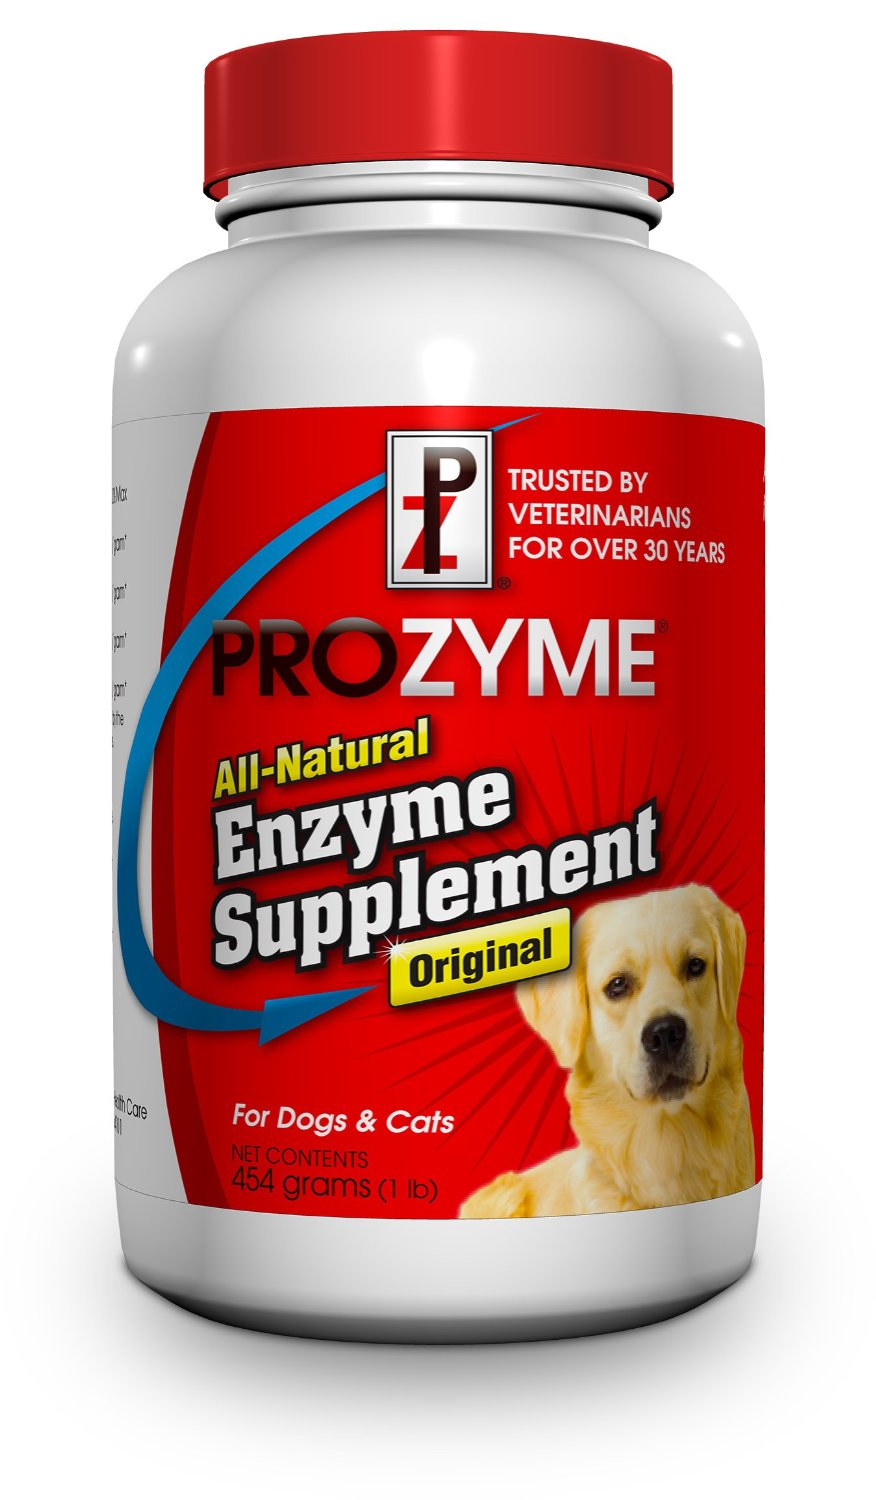 Prozyme Original All-Natural Enzyme Supplement for Dogs and Cats